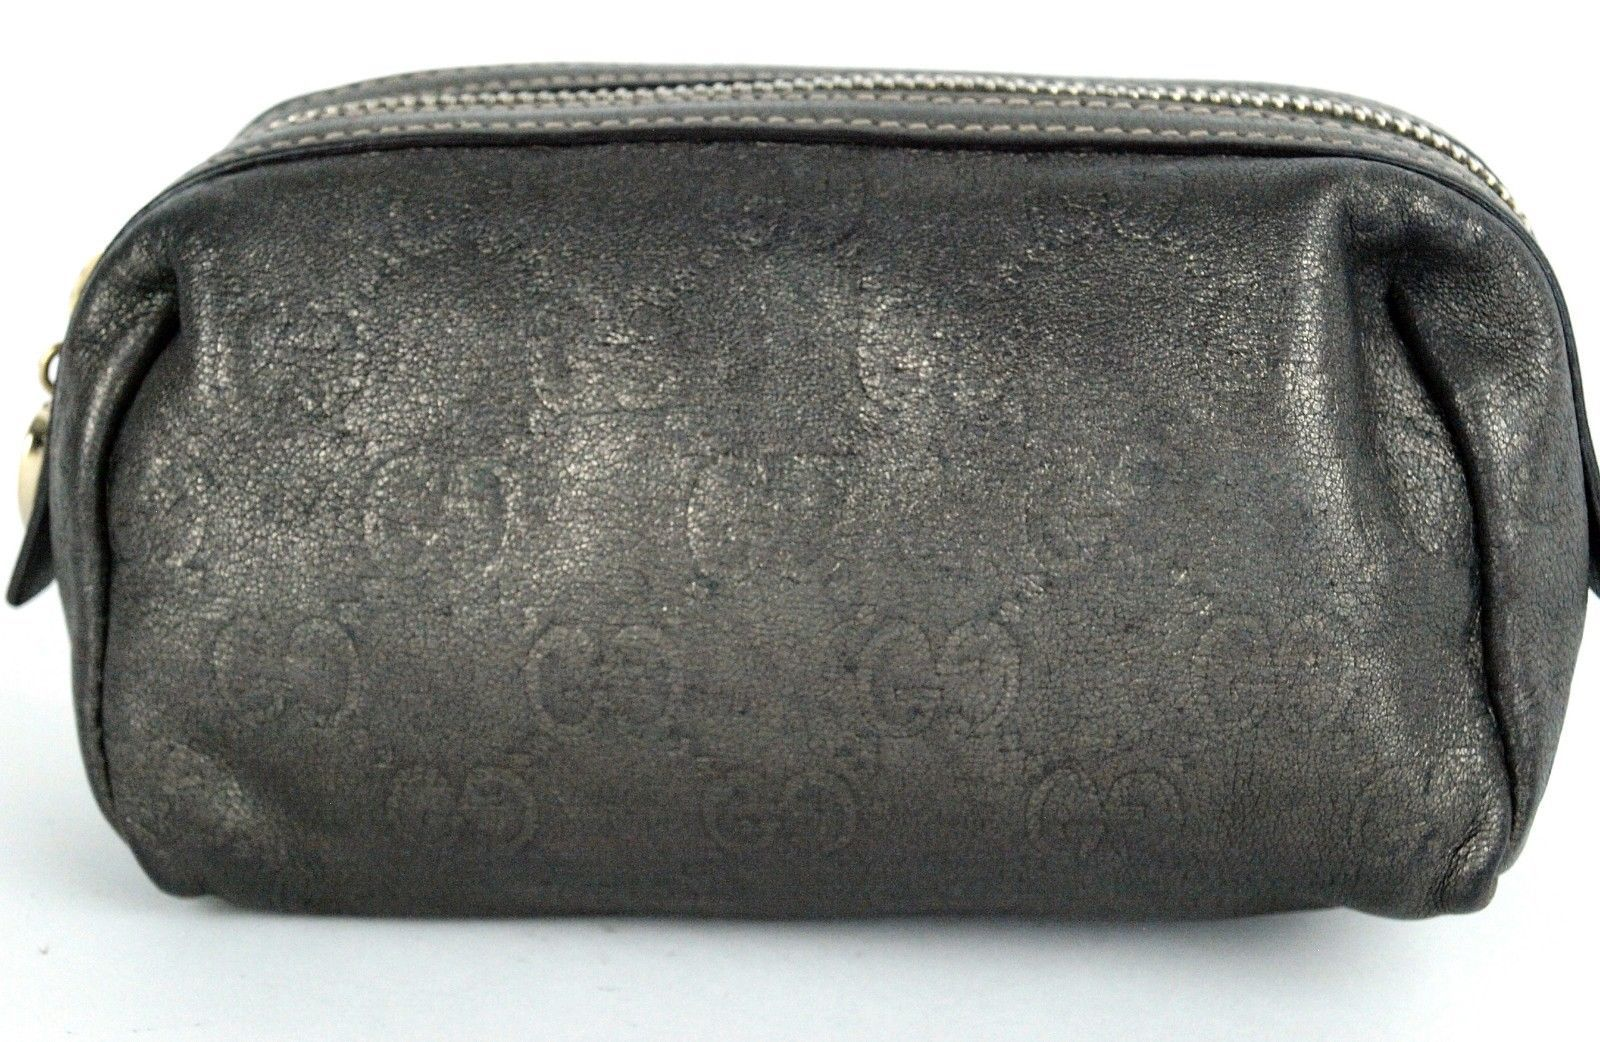 AUTH GUCCI GG GRAY SILVER LEATHER MINI COSMETIC POUCH ACCESSORIES PURSE VINTAGE